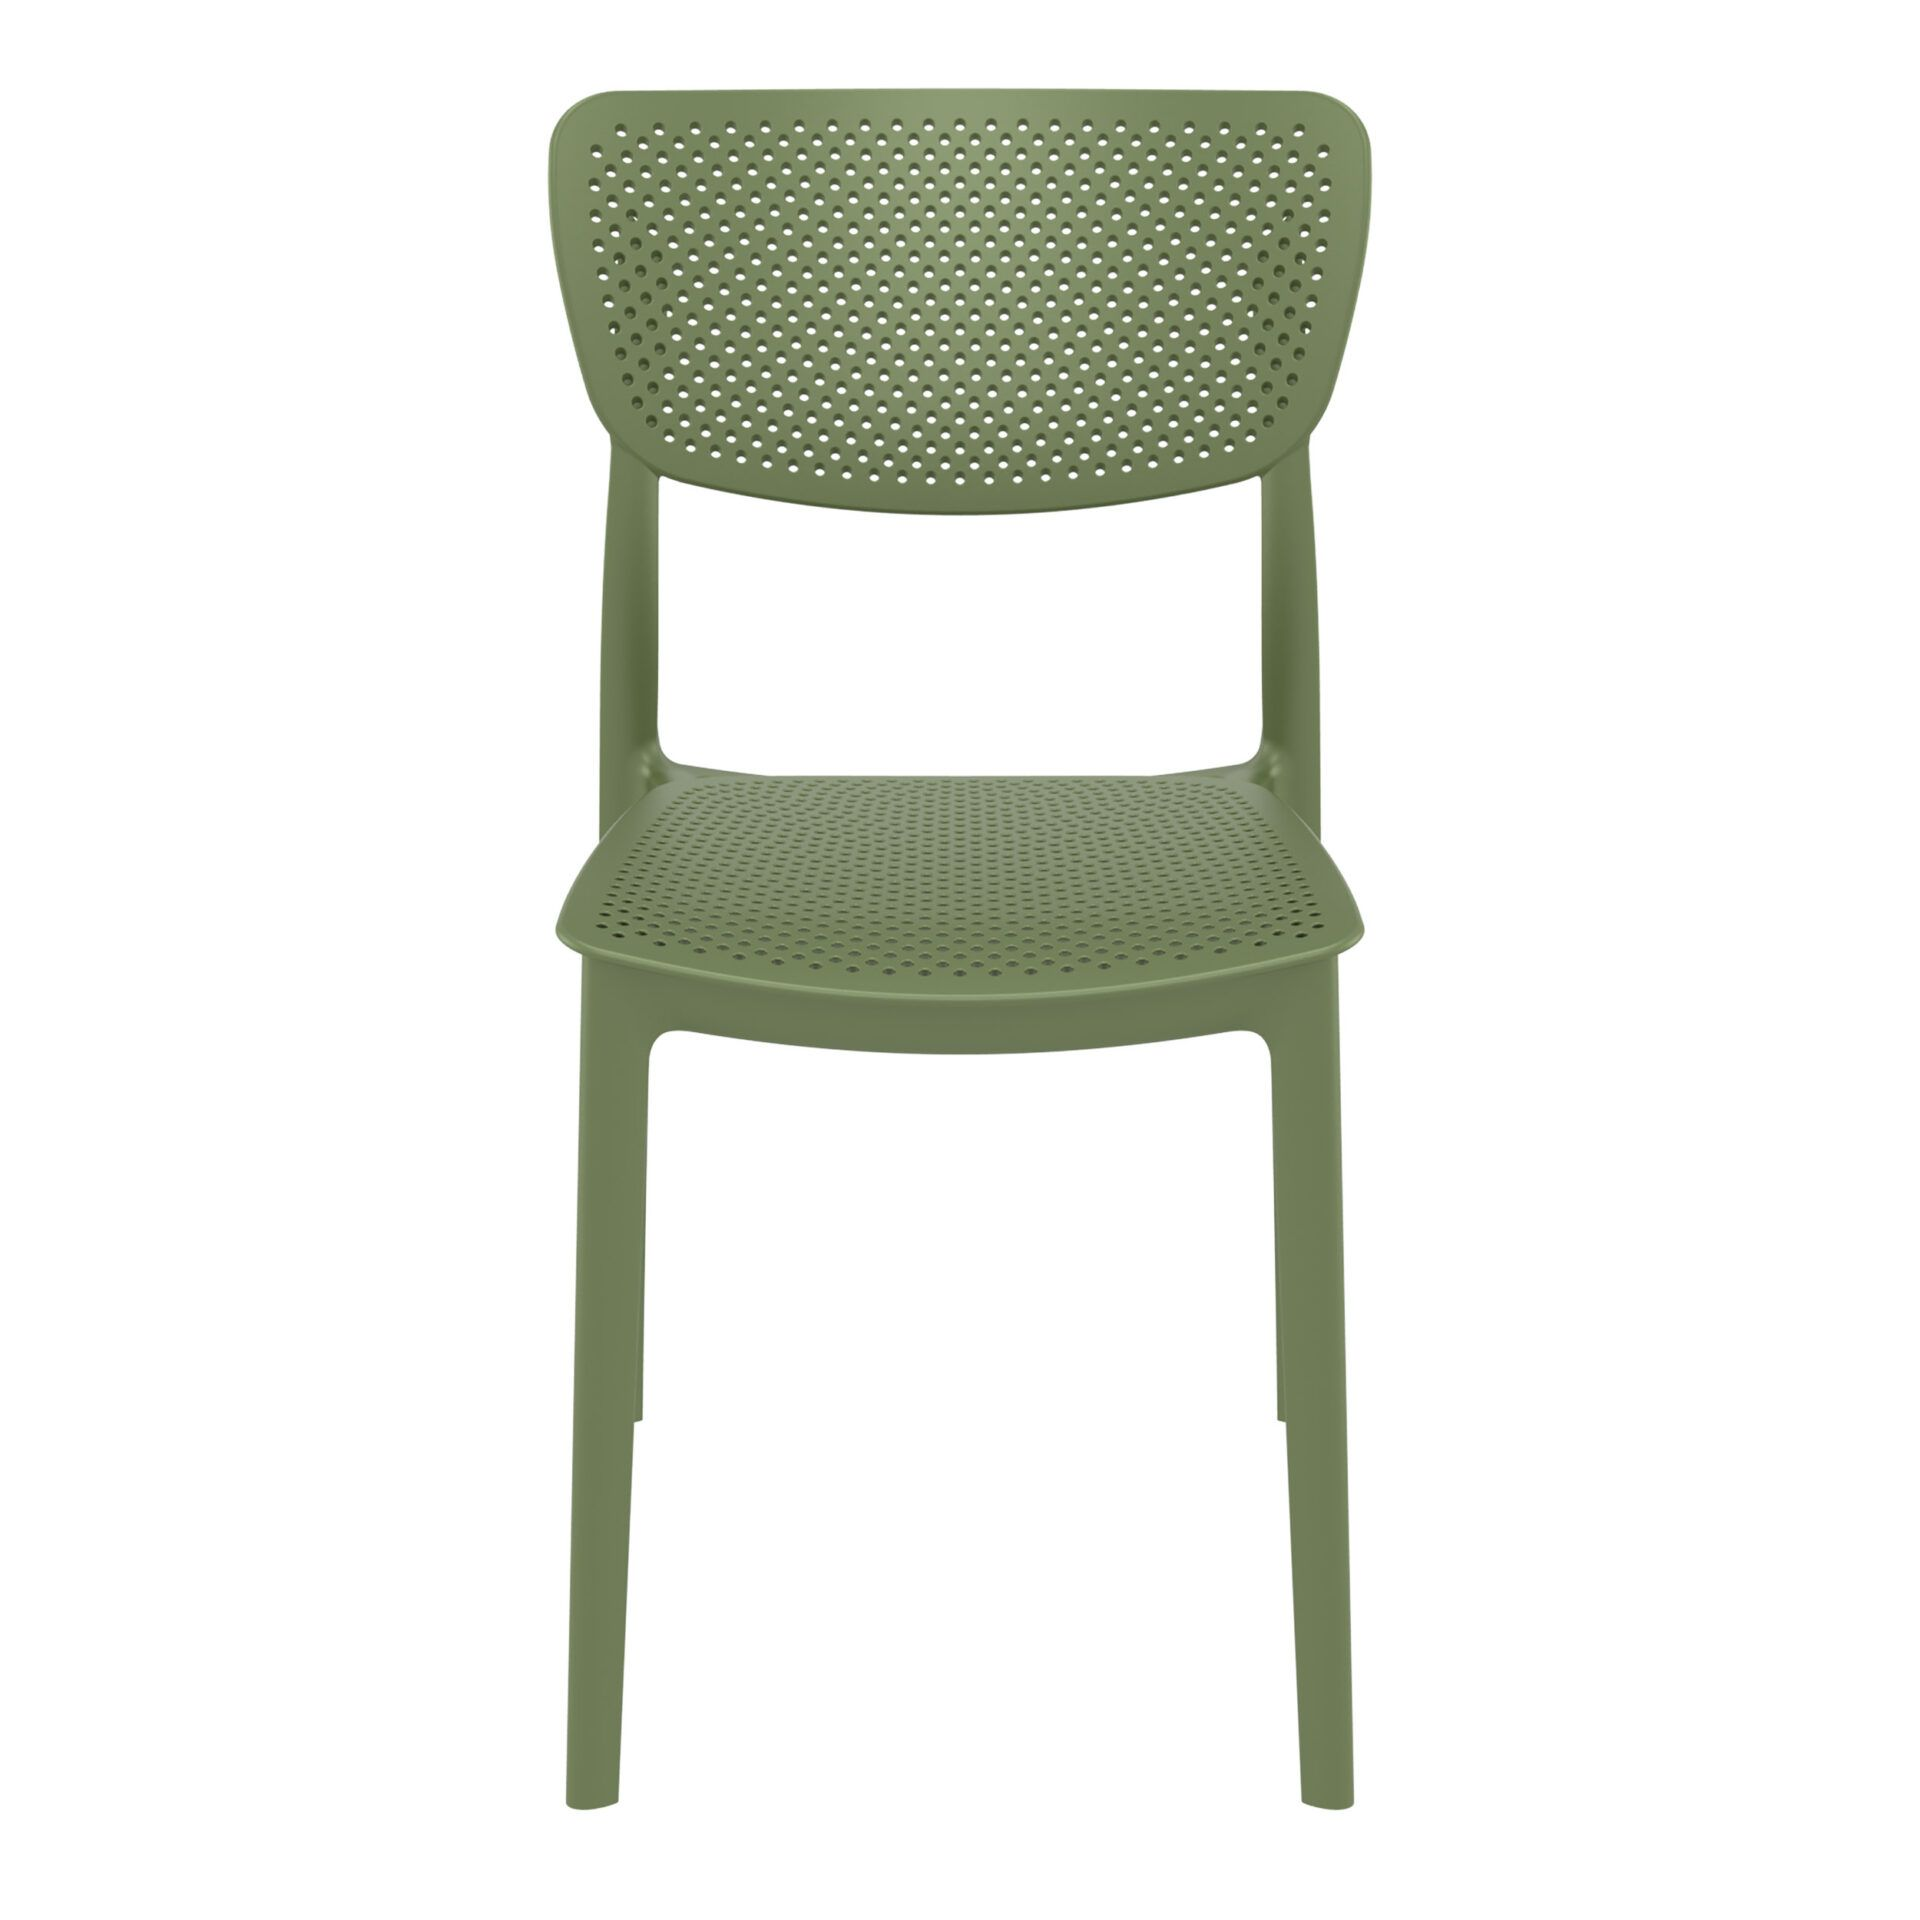 polypropylene hospitality seating lucy chair olive green front